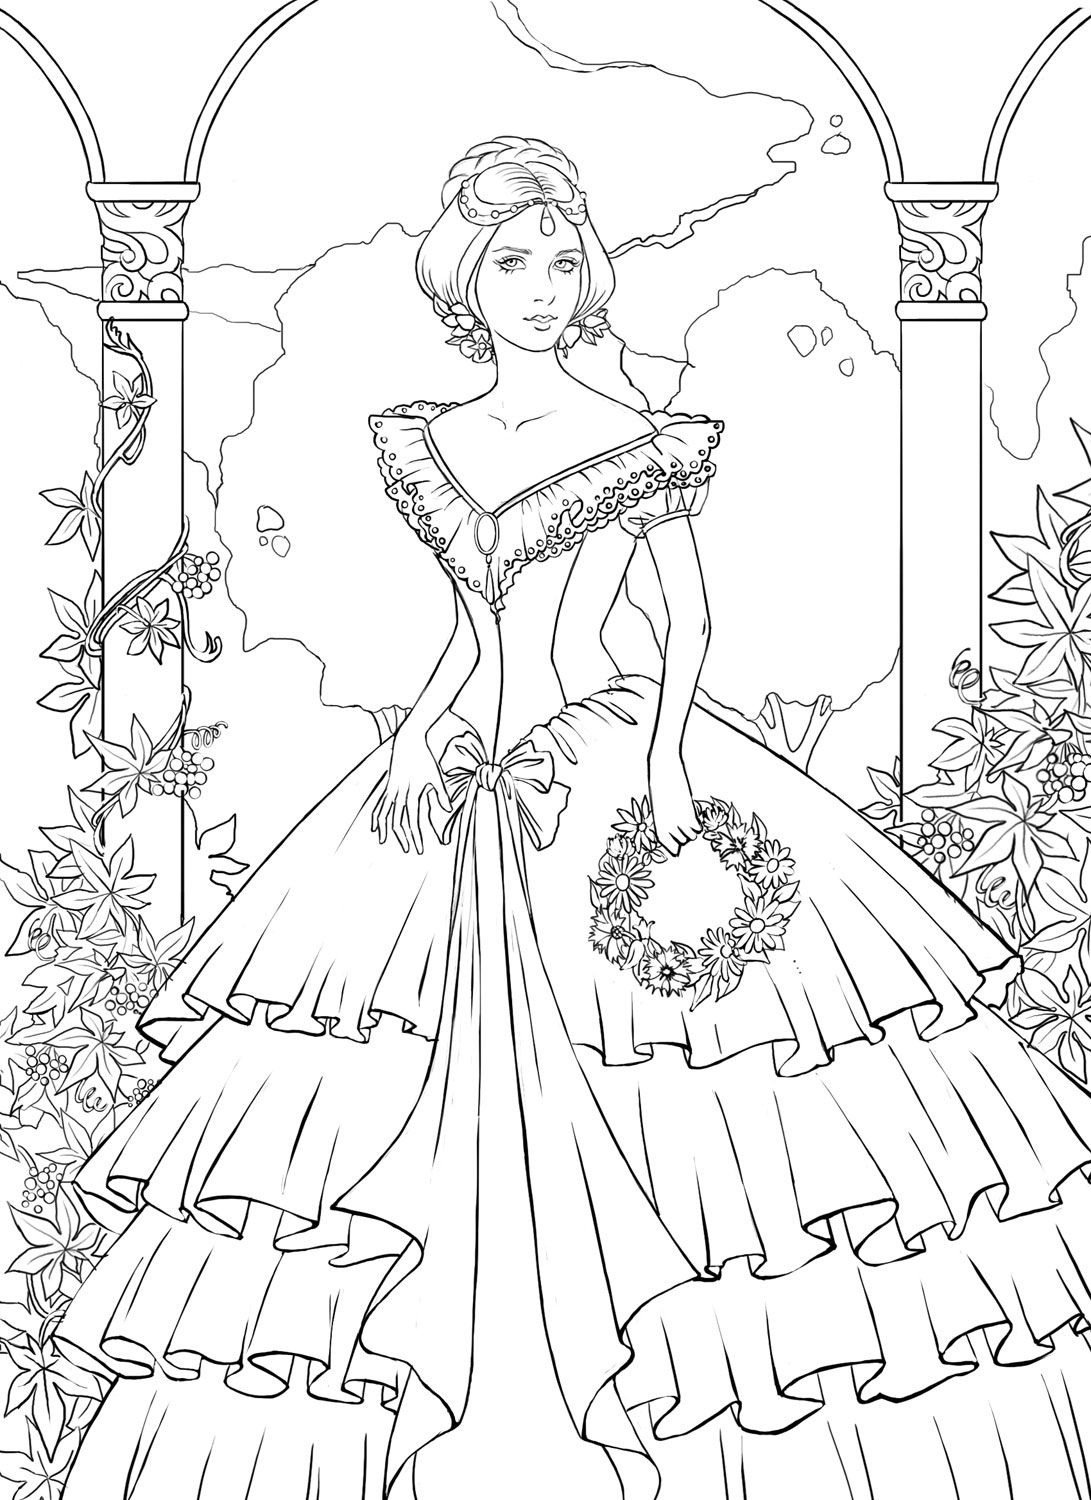 Pages to color for adults - Beautiful Coloring Pages To Print So You Can Slowy Finsish Coloring In A Year Im So